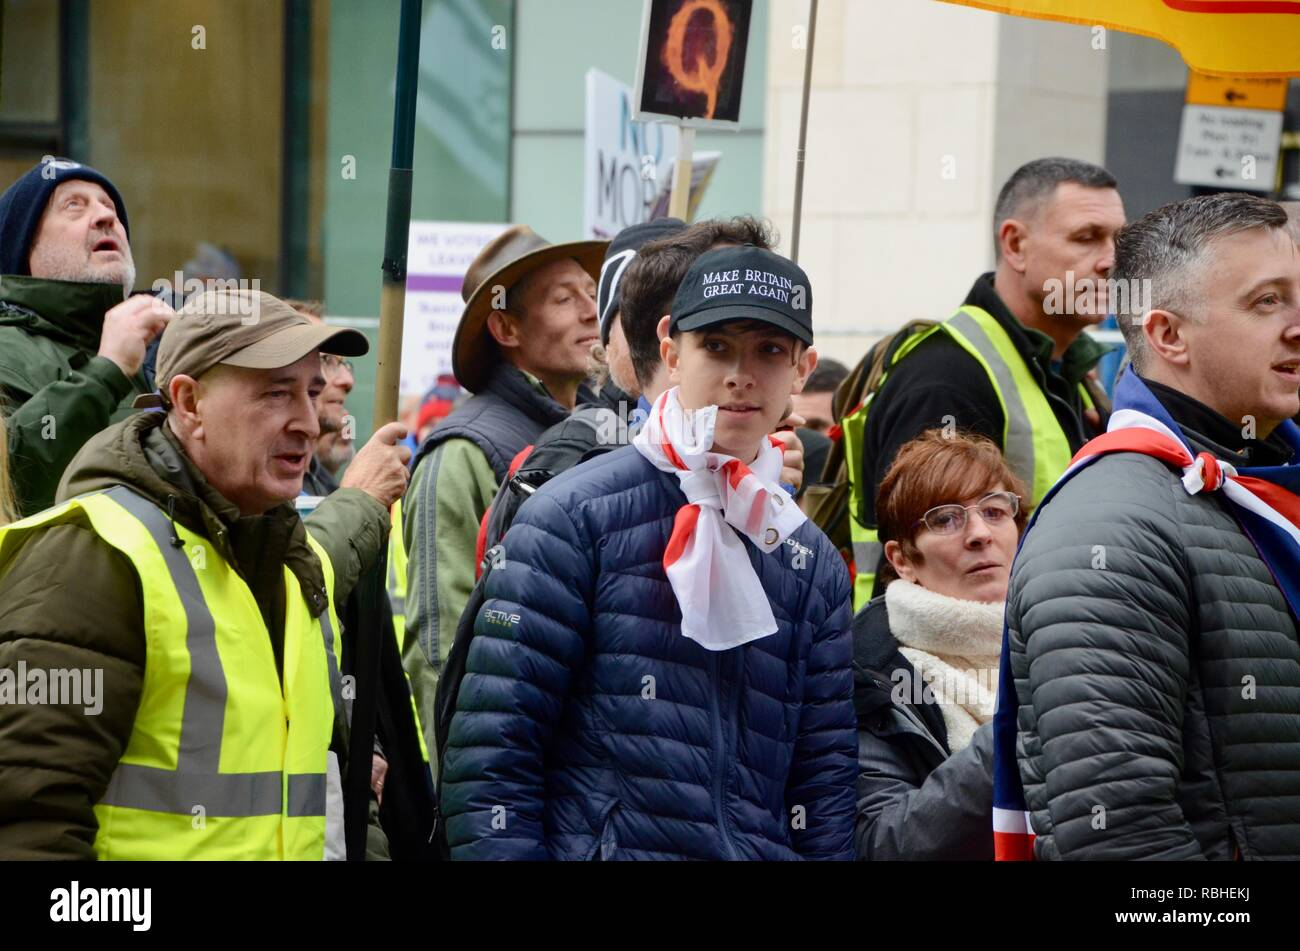 a man in gilet jaunes jacket and a make britain great again hat at the brexit betrayal march in london 2018 - Stock Image